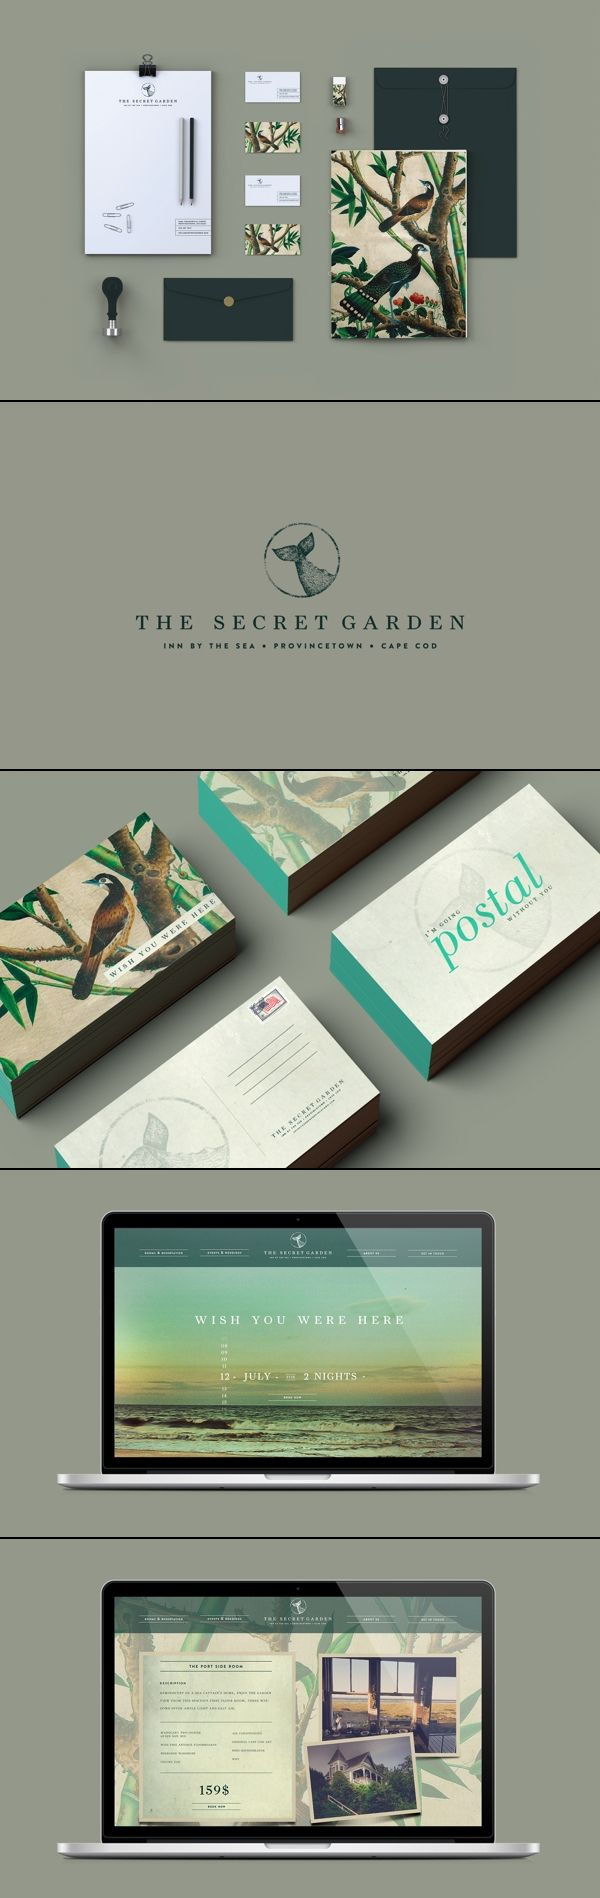 61 best business cards images on pinterest presentation cards the secret garden identity speaks for it i especially love the teal edges of the business cards by christian allegra poschmann magicingreecefo Choice Image